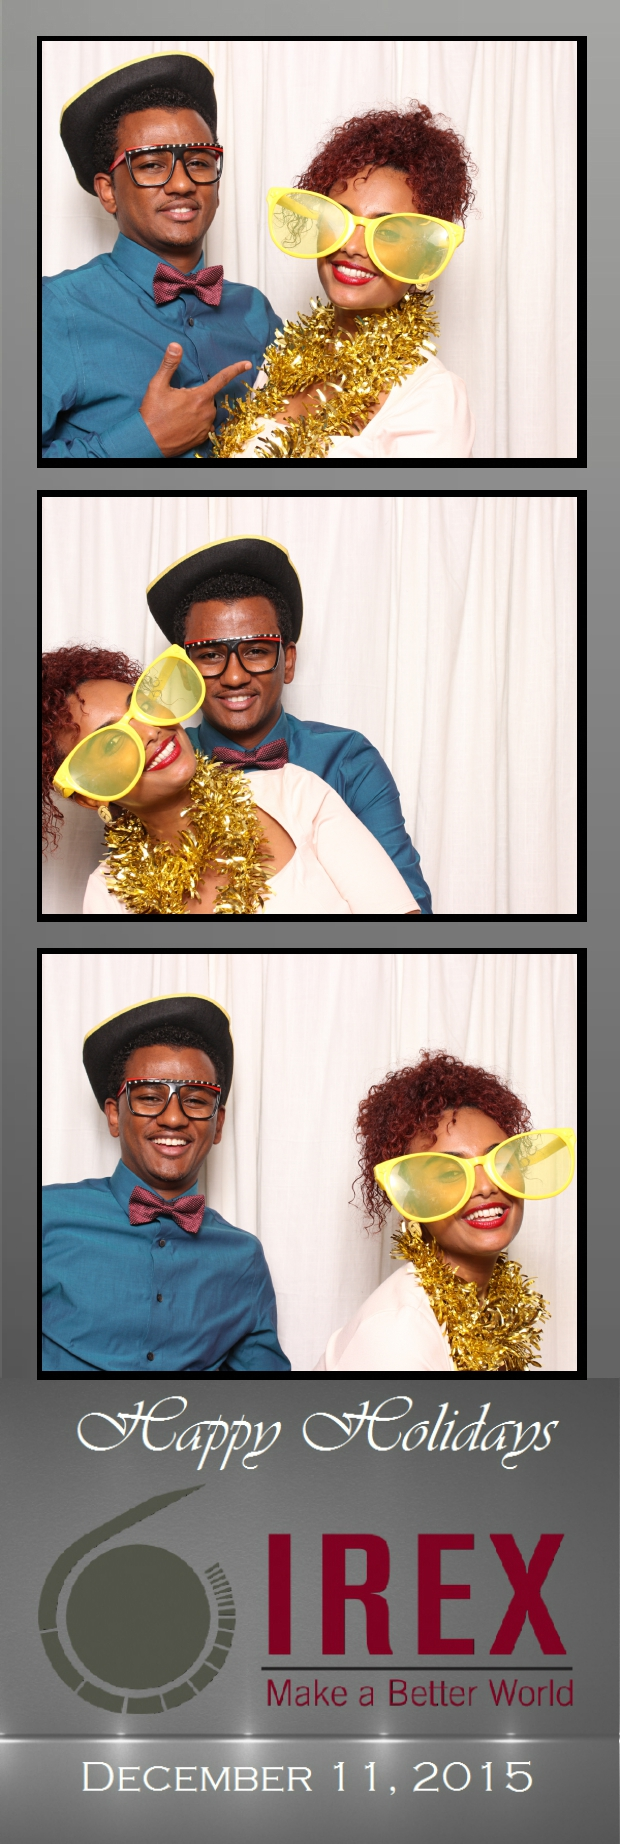 Guest House Events Photo Booth Strips IREX (75).jpg